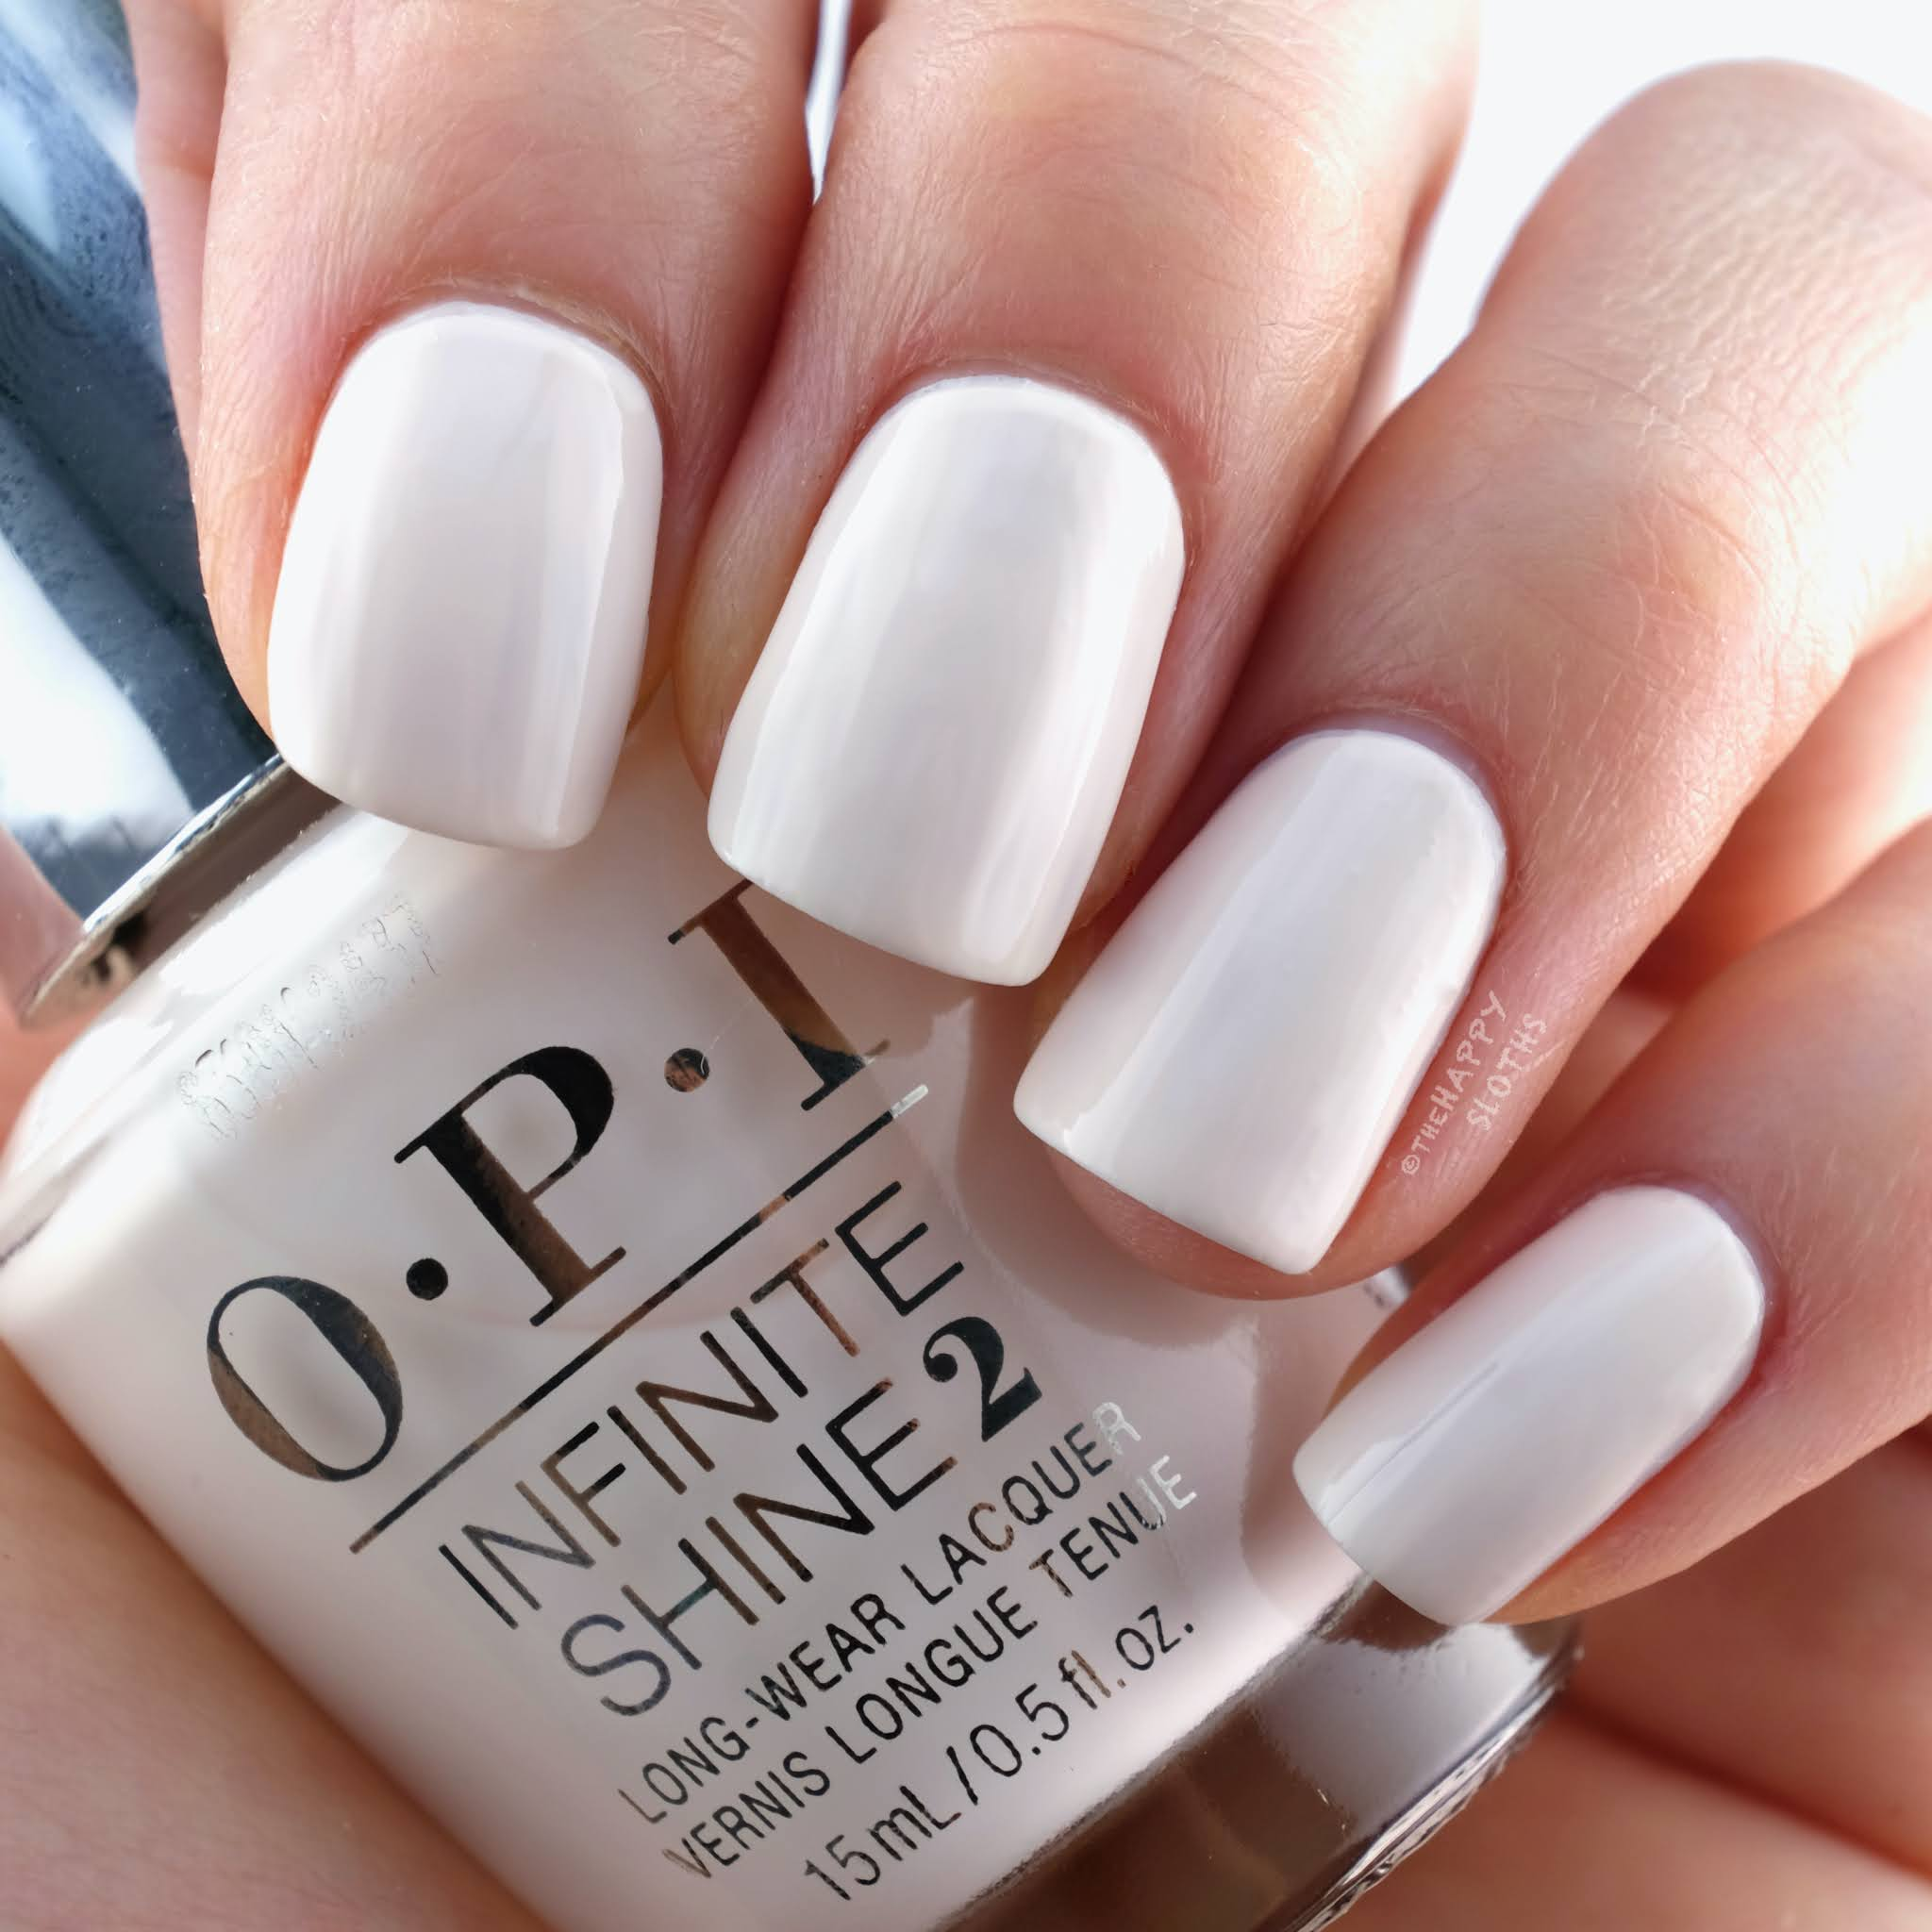 OPI Summer 2021 Malibu Collection   Coastal Sand-tuary: Review and Swatches